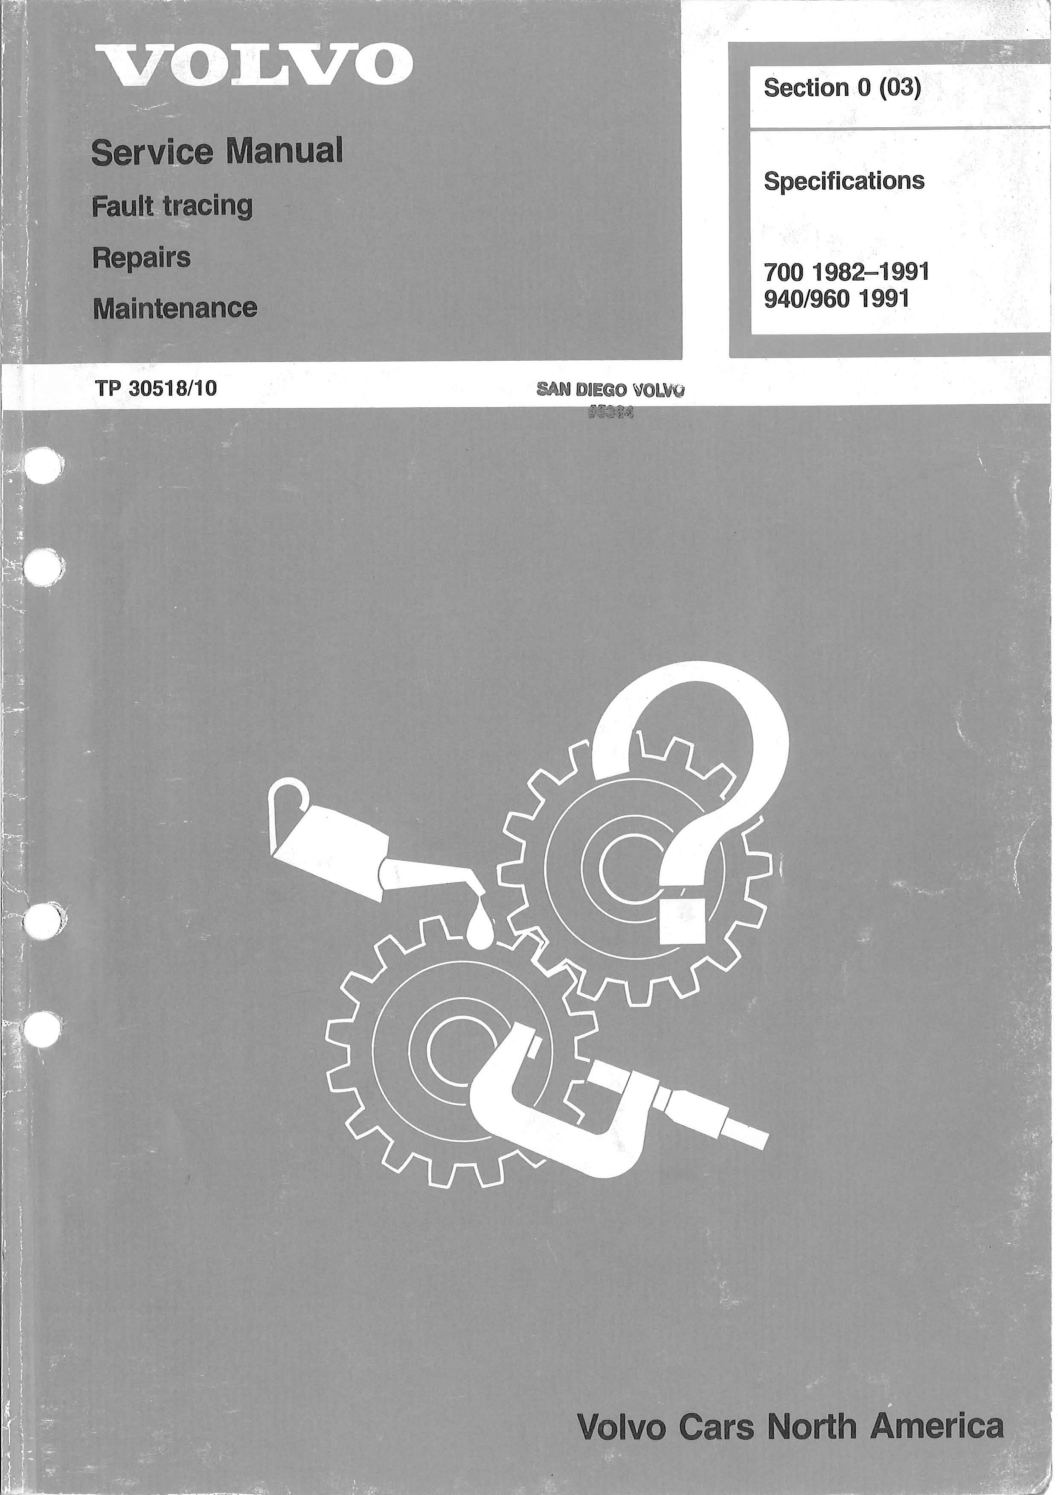 91 volvo 940 1991 owners manual